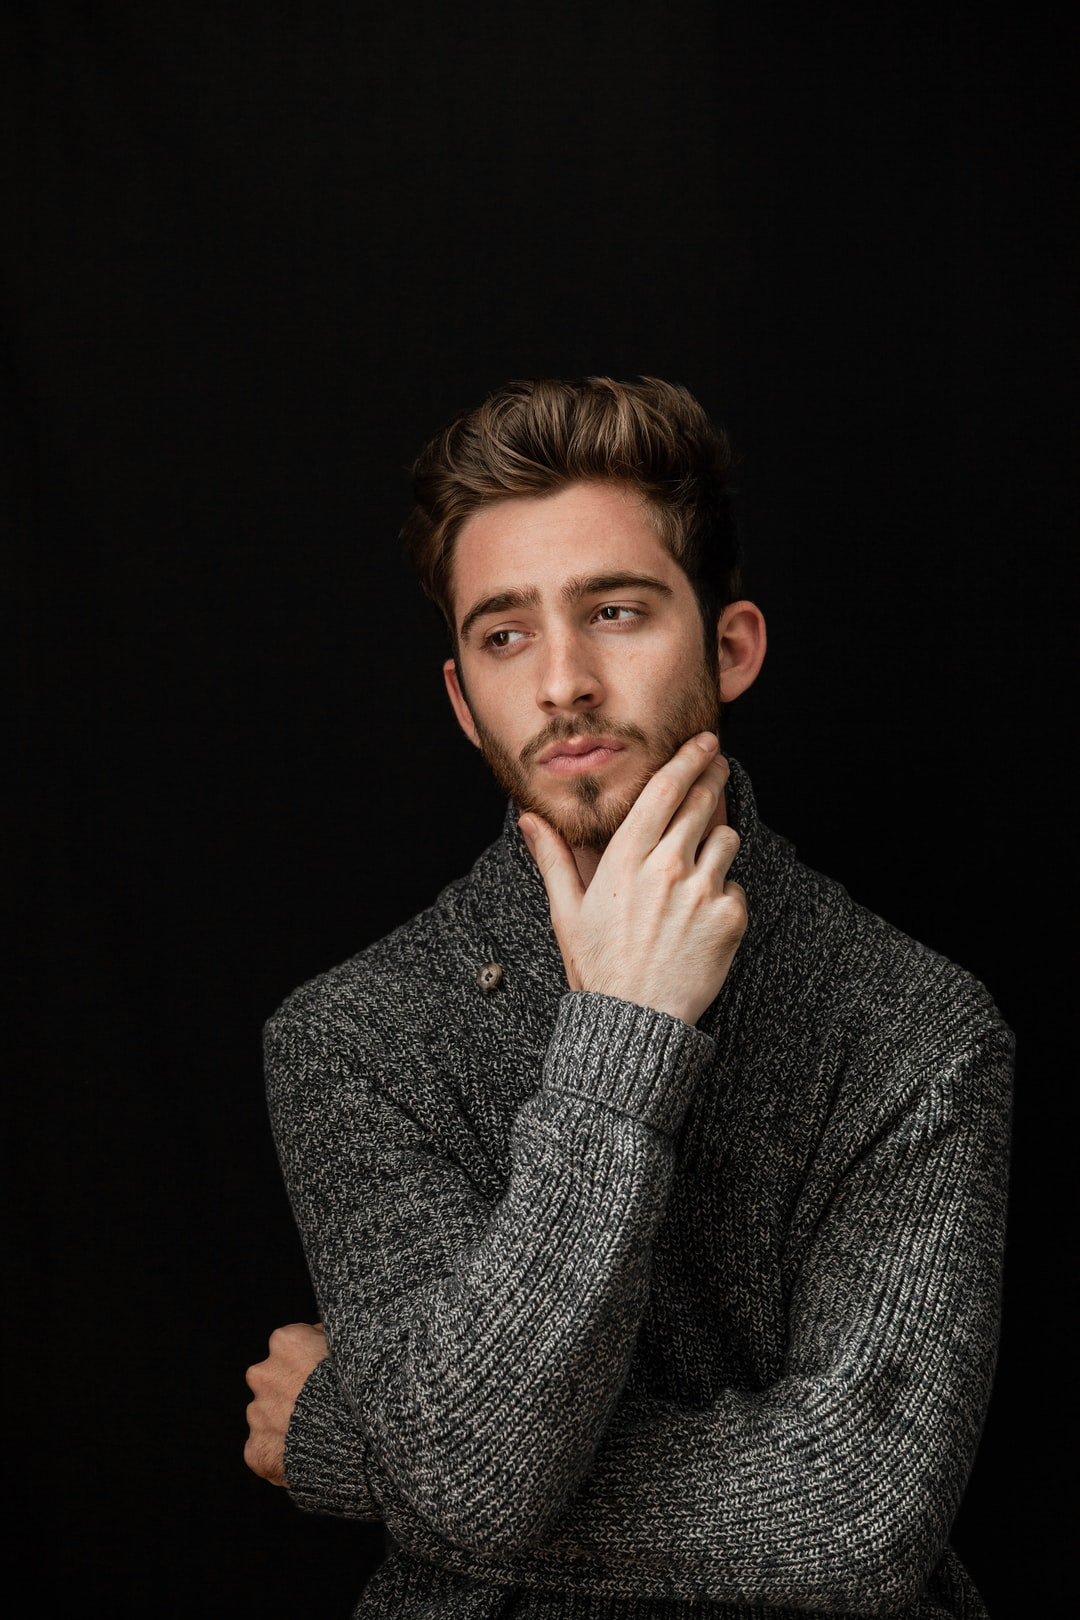 I had the privilege of shooting some headshots for a very close friend of mine back in 2015. What makes me most proud of this shoot is that not only did we shoot these pictures in my house's hallway, it also landed him many rolls on short films. It even got him his first Acting Agent. Keep it up, Cameron! Love you bud.  Instagram: @cameronphayes